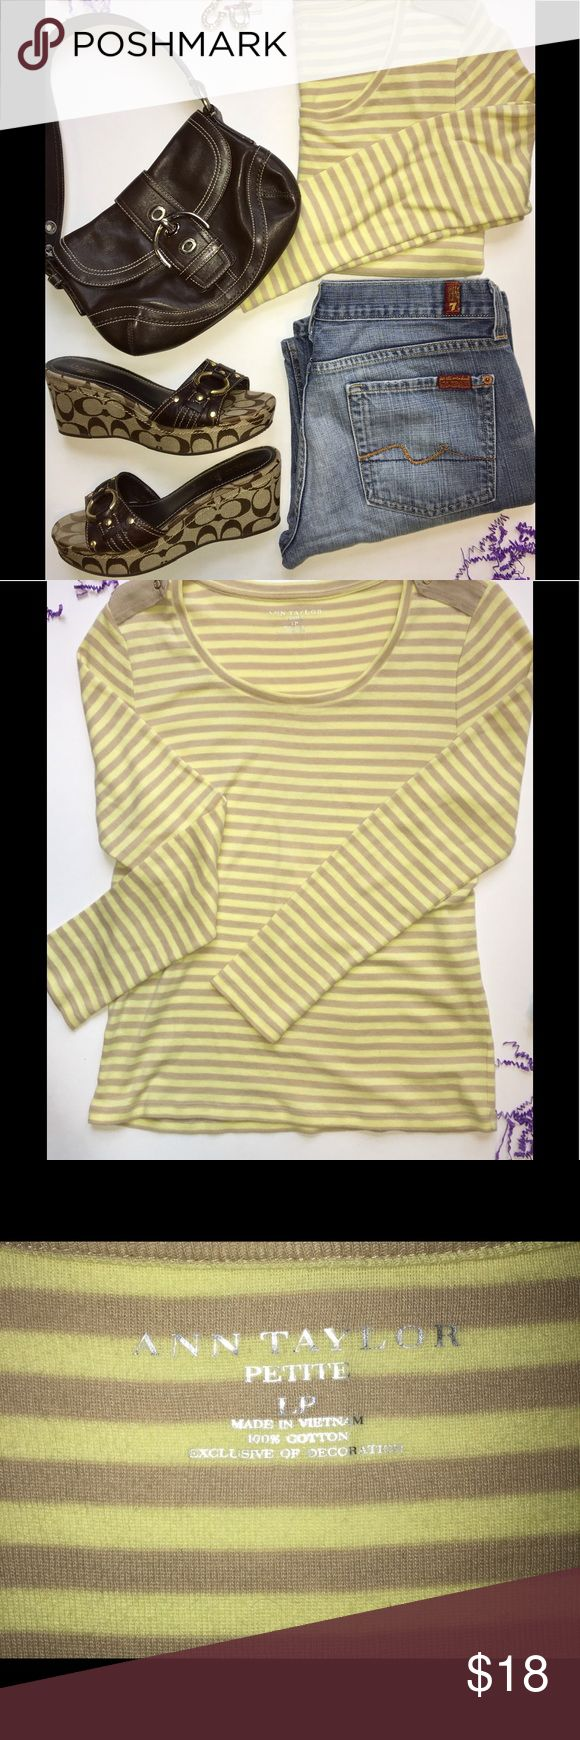 🤑Ann Taylor Lemon & Beige Tee Sz LP Beautiful and comfy soft Ann Taylor lemon yellow and beige striped tee with shoulder epaulette detailing! Love this with denim - blue or white! Petite Large Ann Taylor Tops